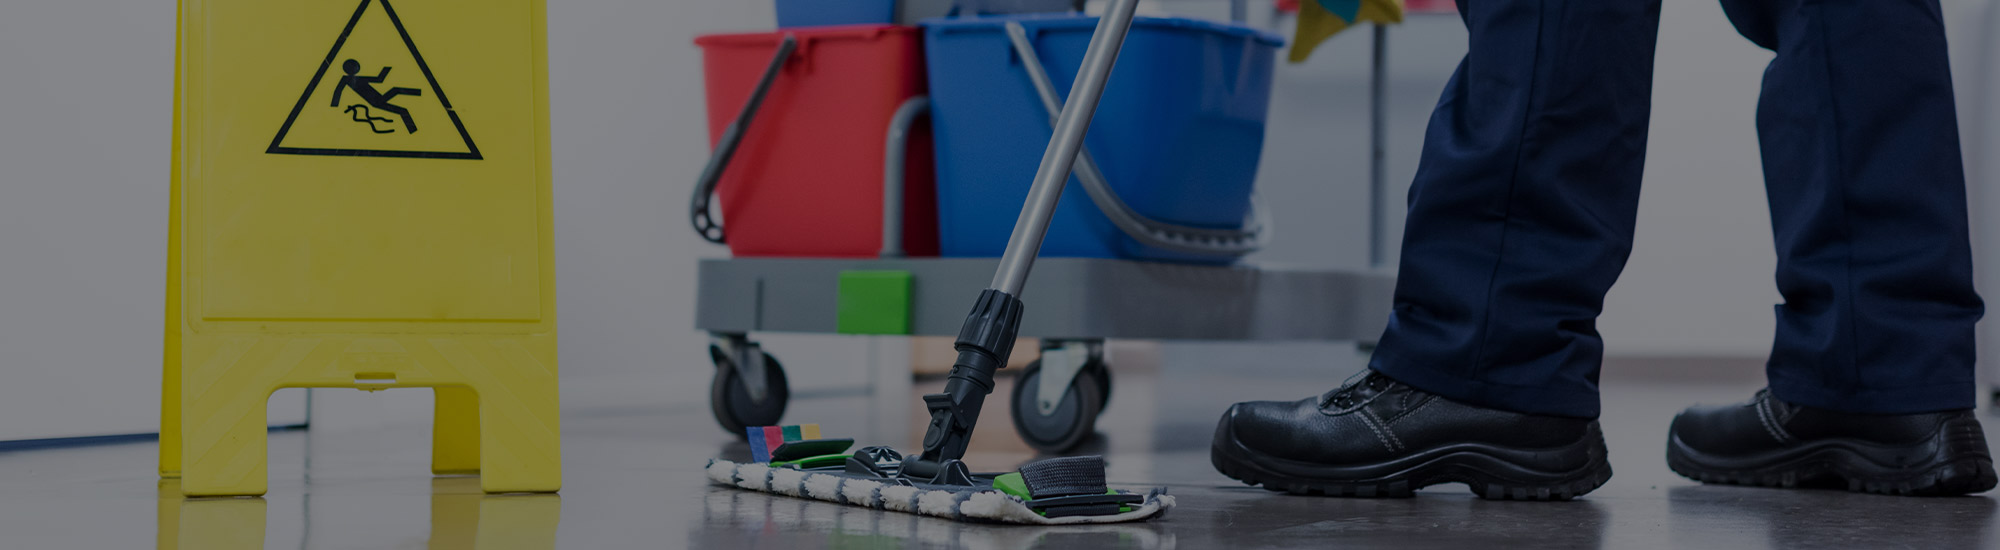 Myrtle Beach Commercial Cleaning Company